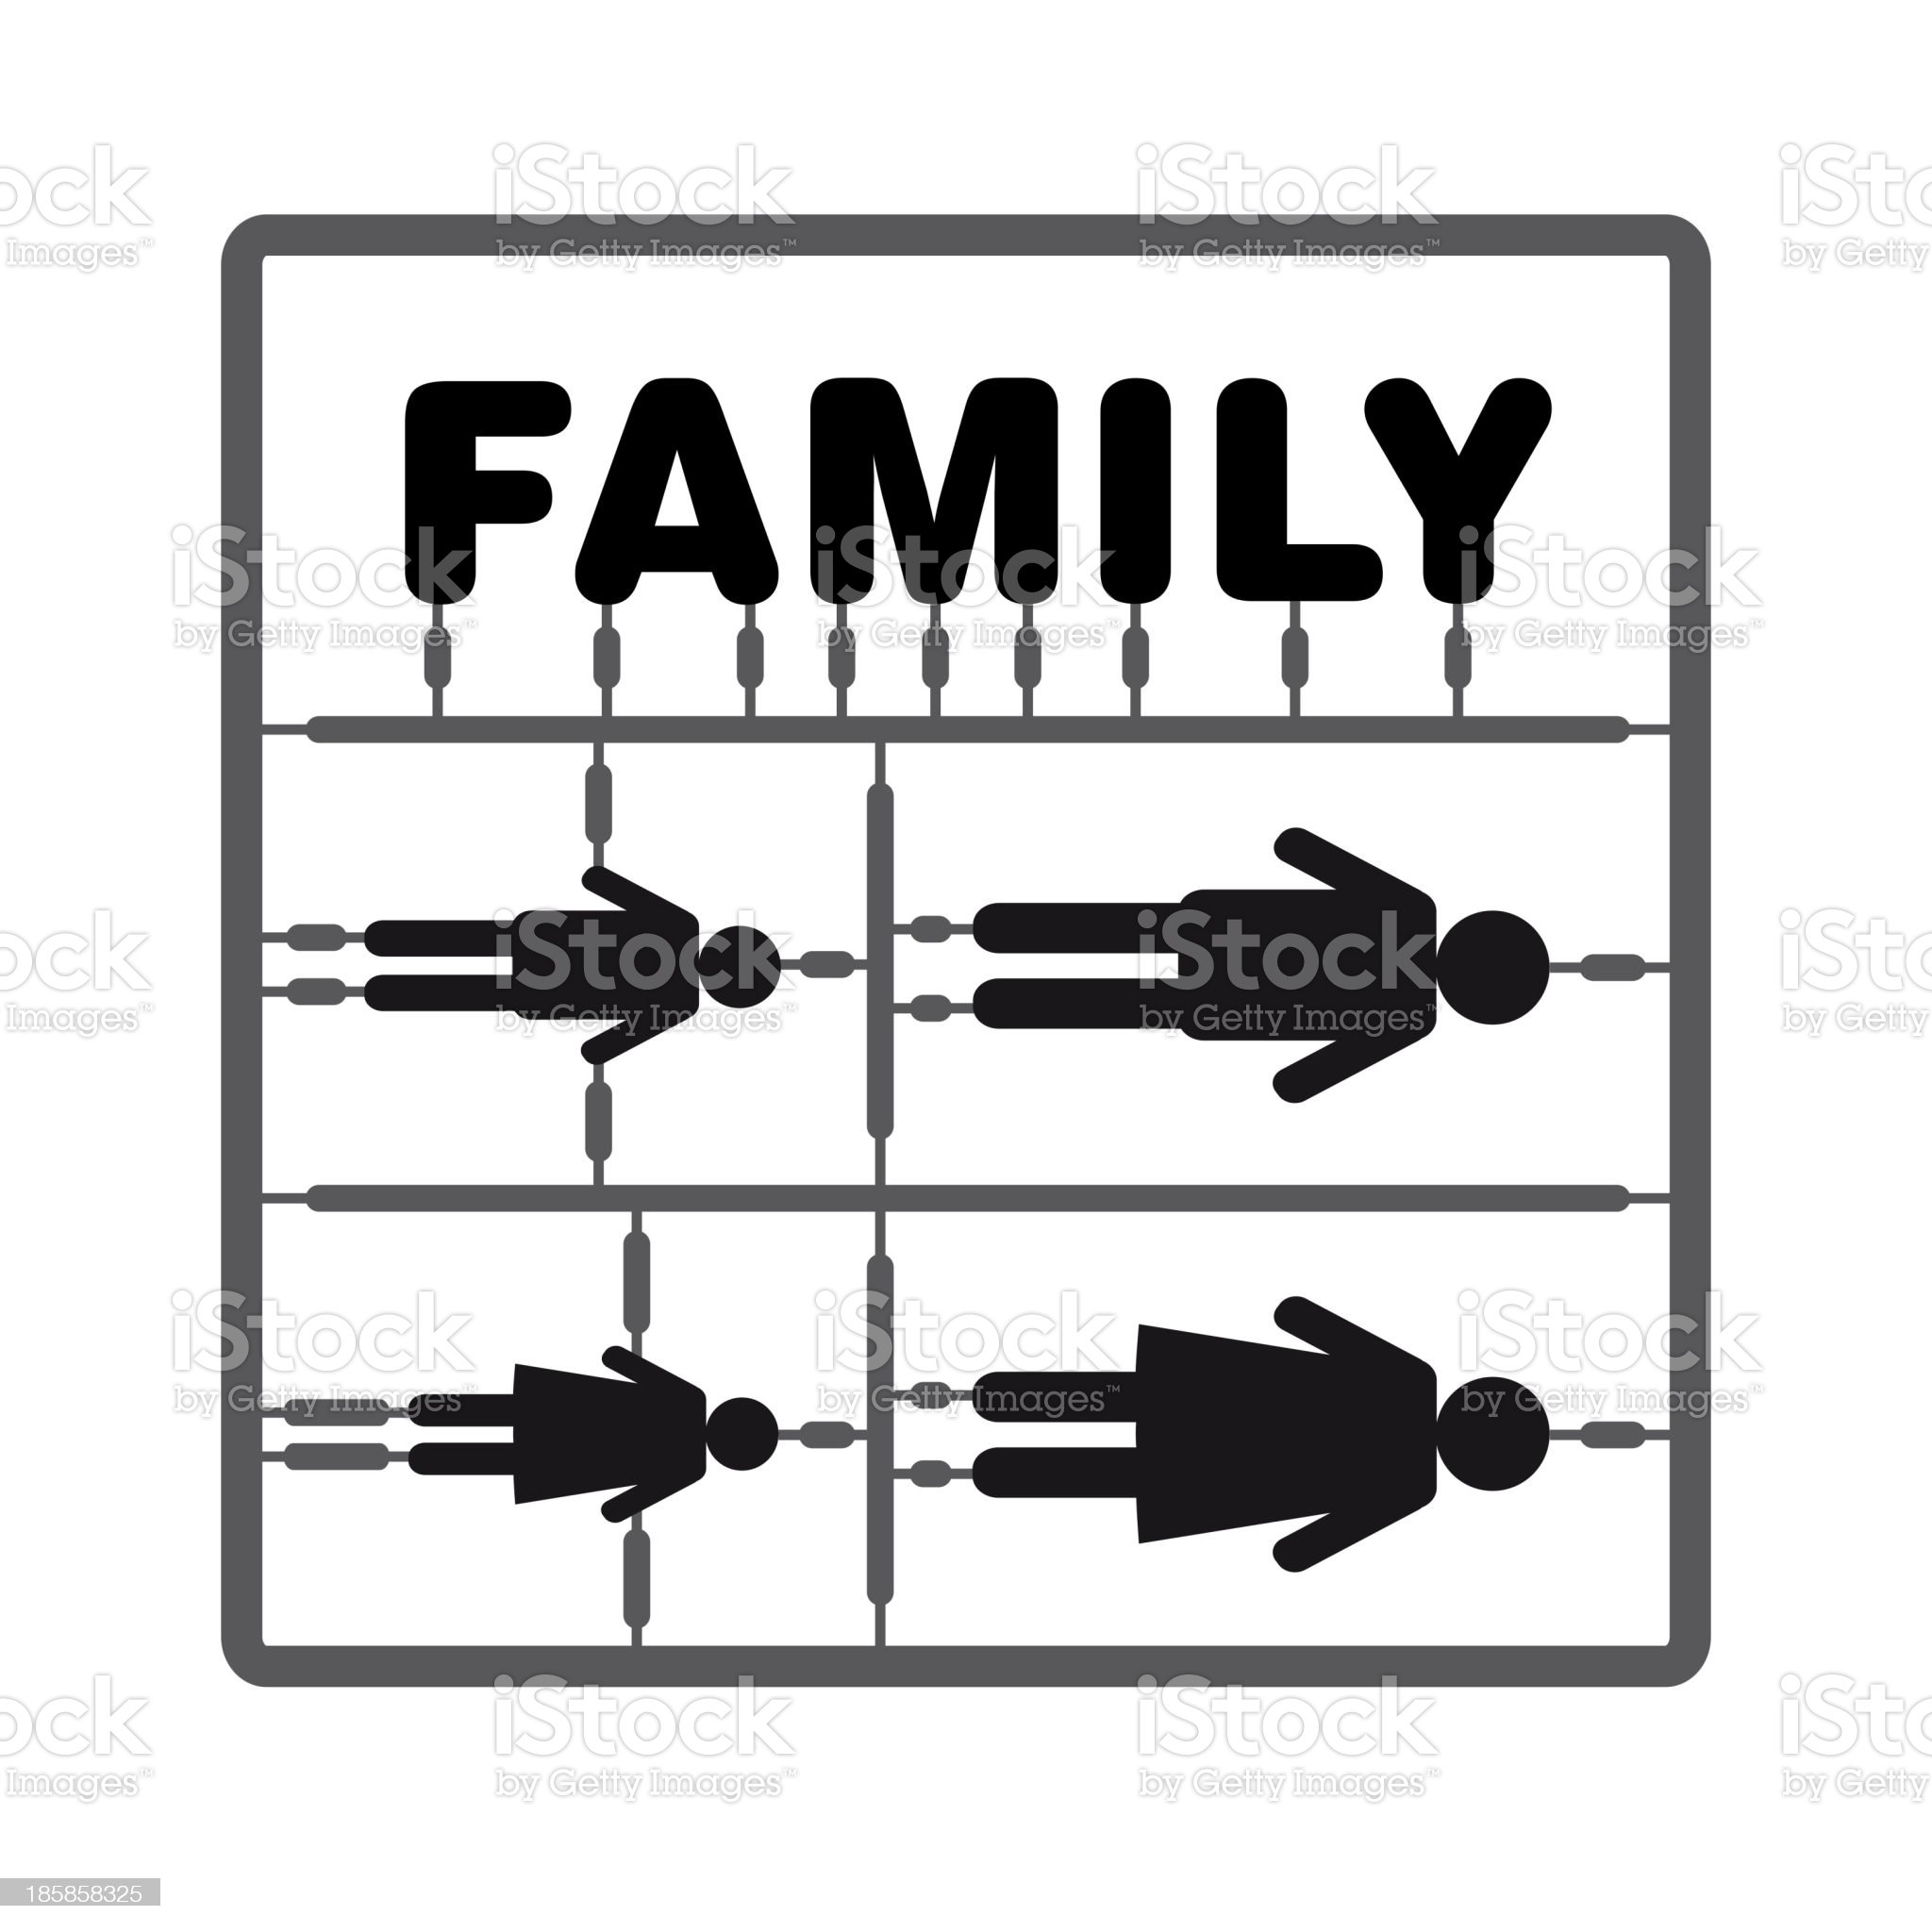 Silhouette family model kit with sign royalty-free stock vector art